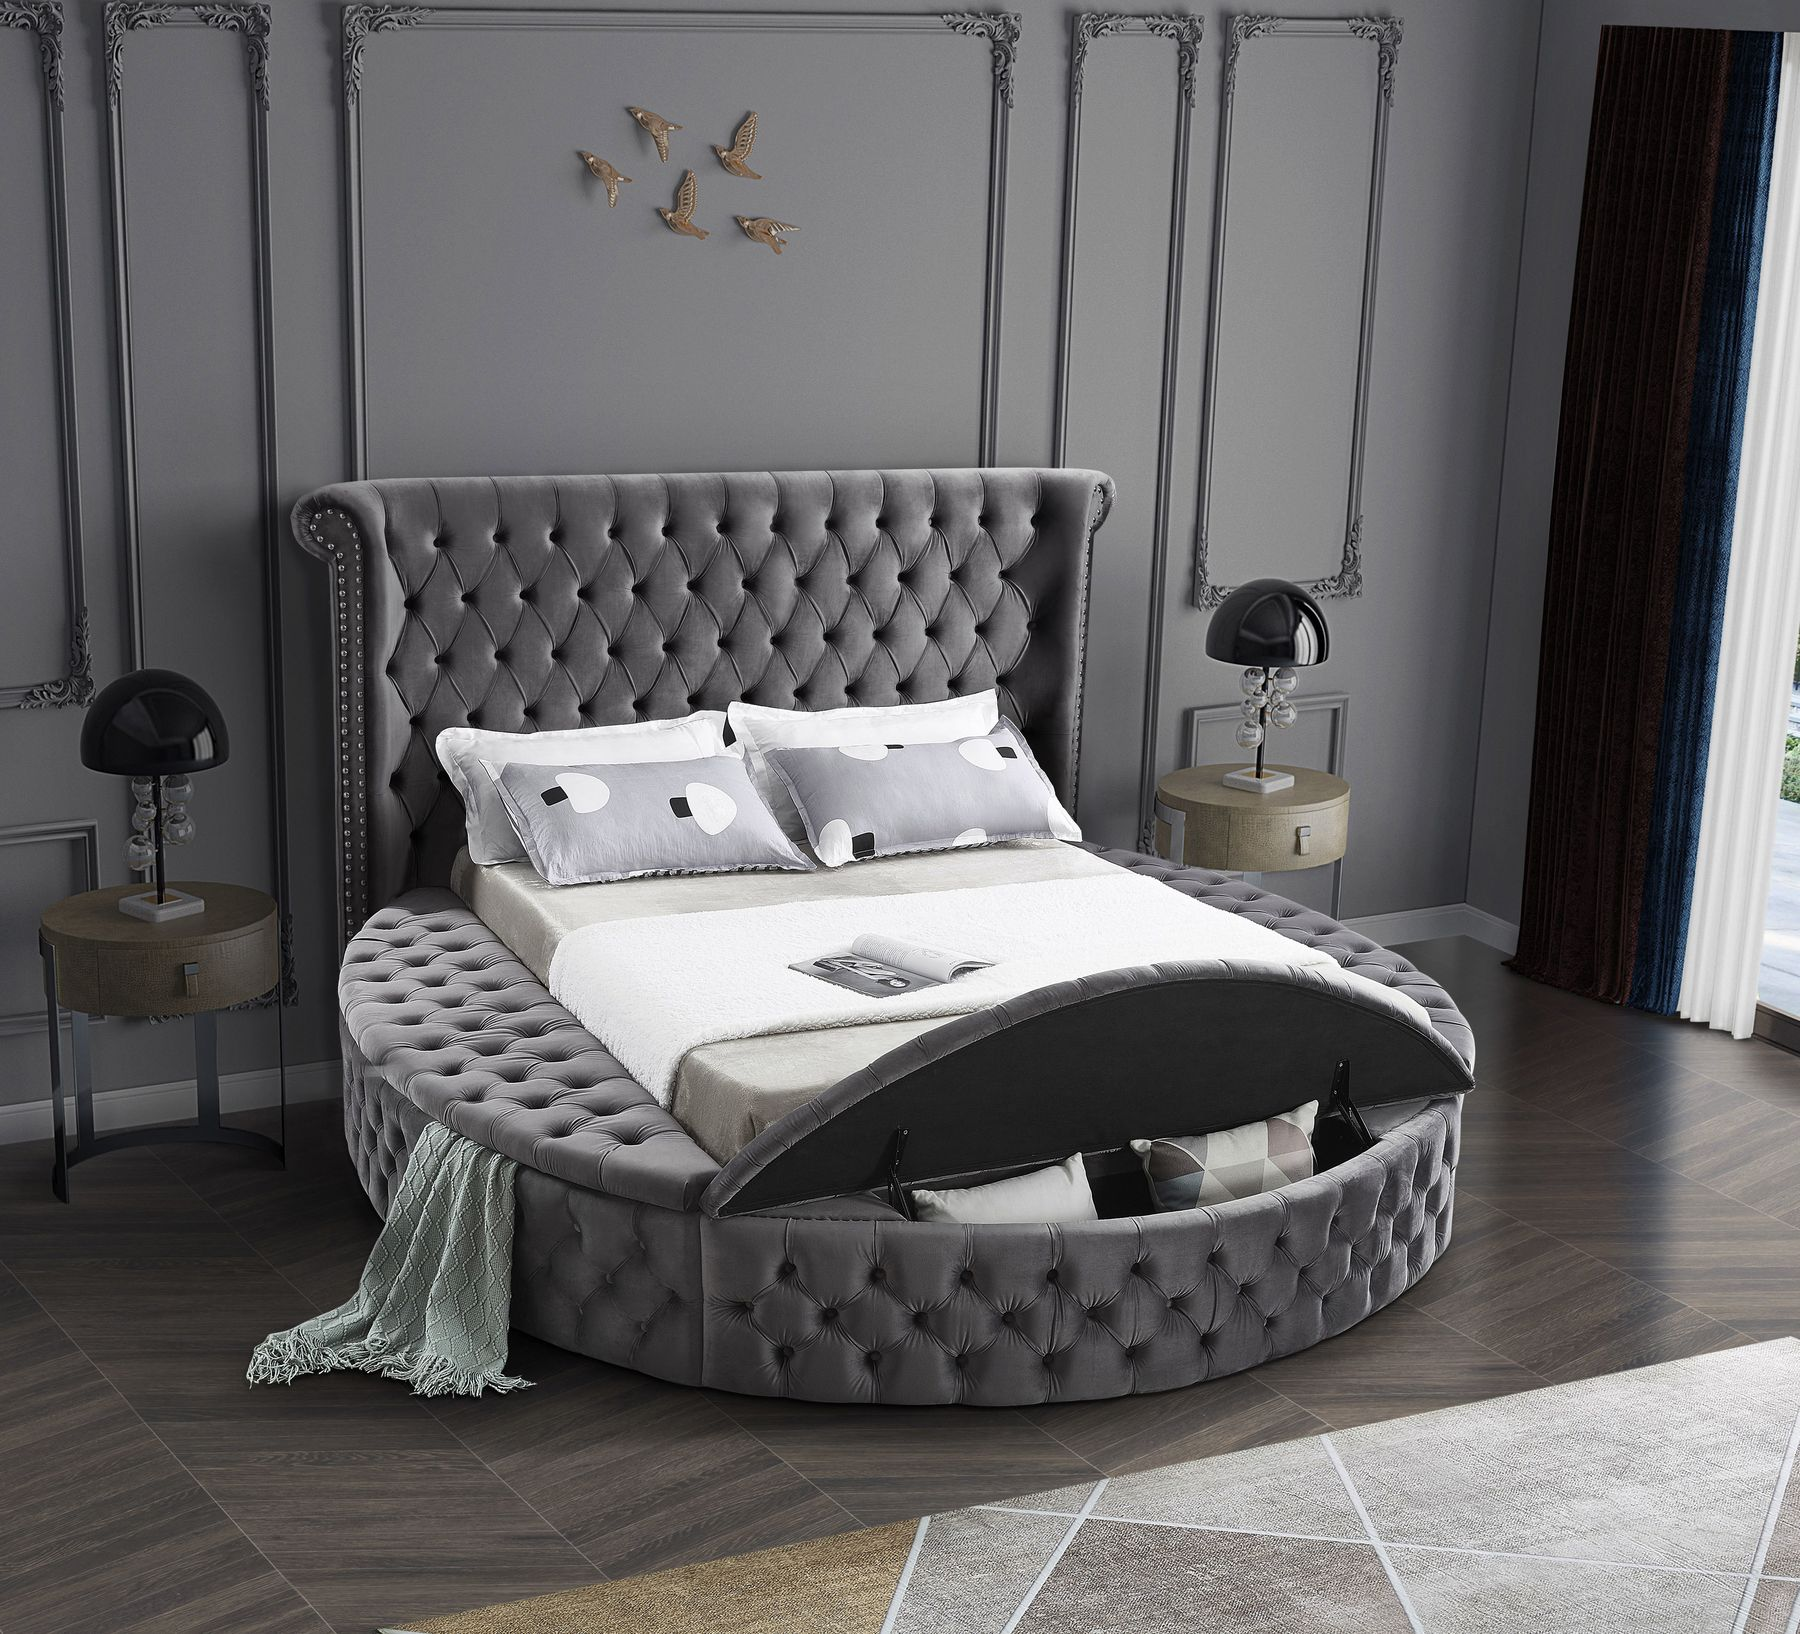 Luxus (Gray) price for Full Size Bed, Elegant and eye-catching, the stunning gray velvet Luxus Full Bed (3 Boxes) is the perfect addition to any space. Variety of colors available, standard mattress sizes fit perfectly. You don't need anything else except the mattress for this bed: it has built-in platform for support.Full Size Bed W87